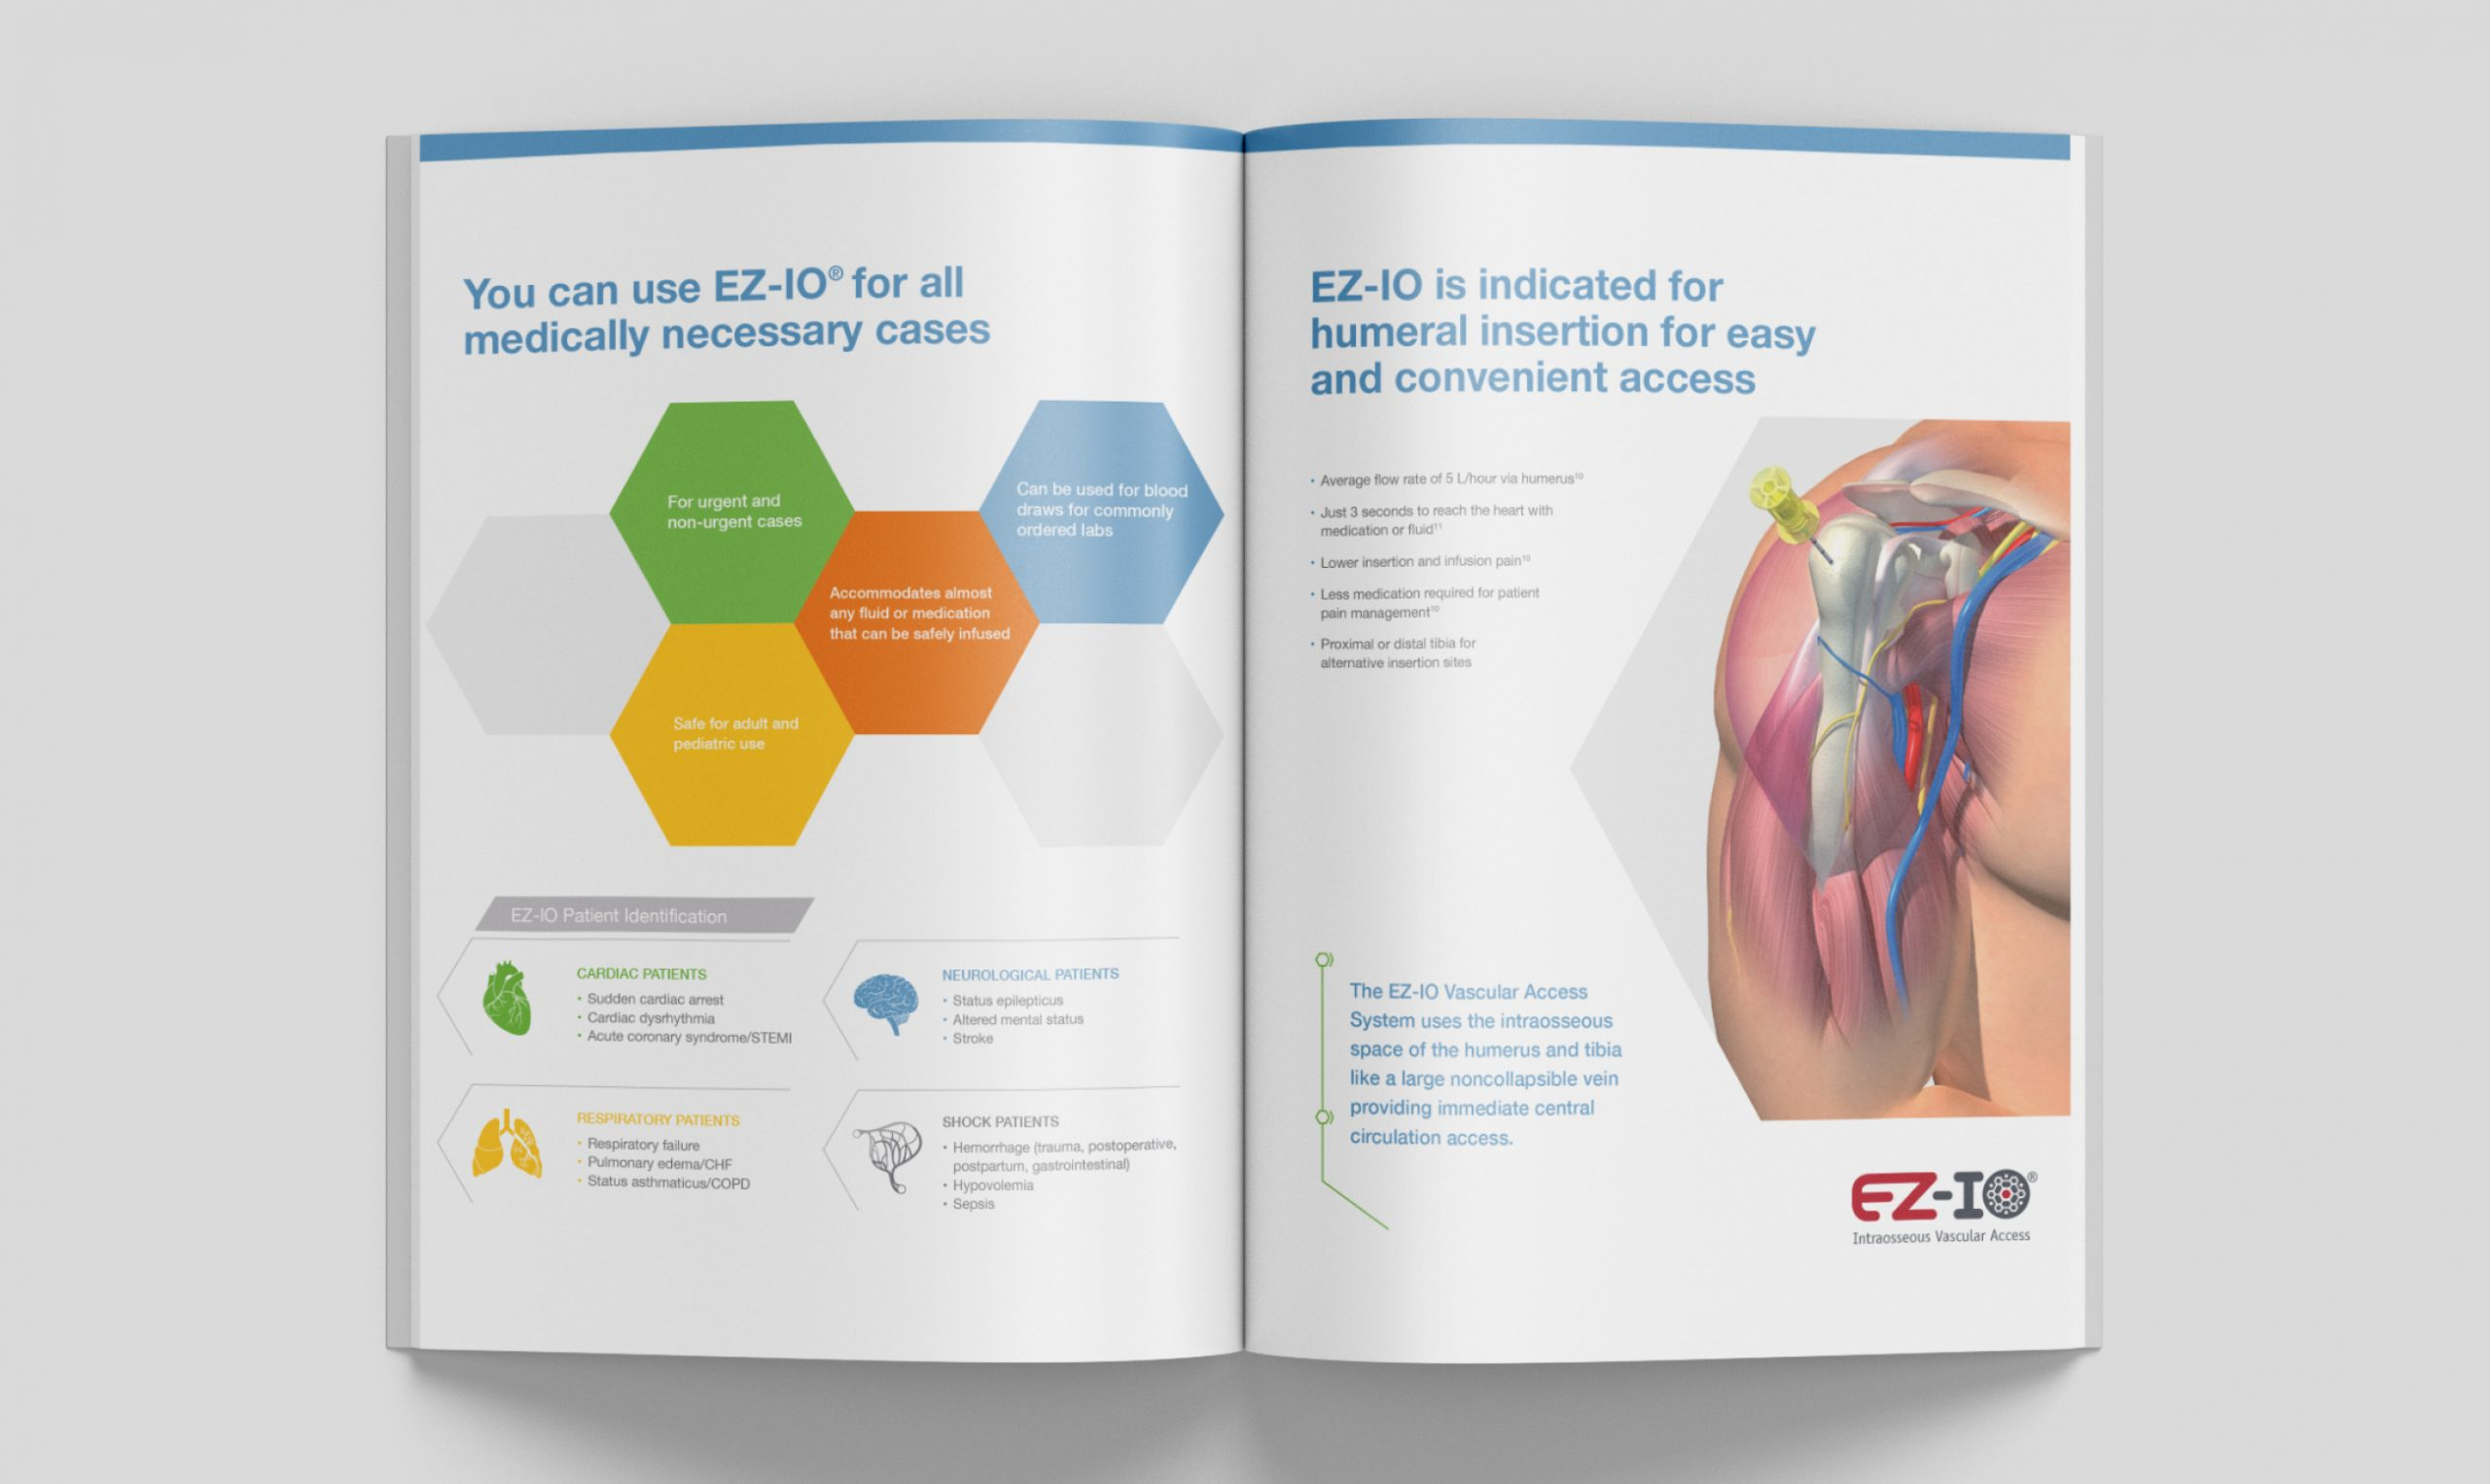 A two page spread about the benefits of EZ-IO